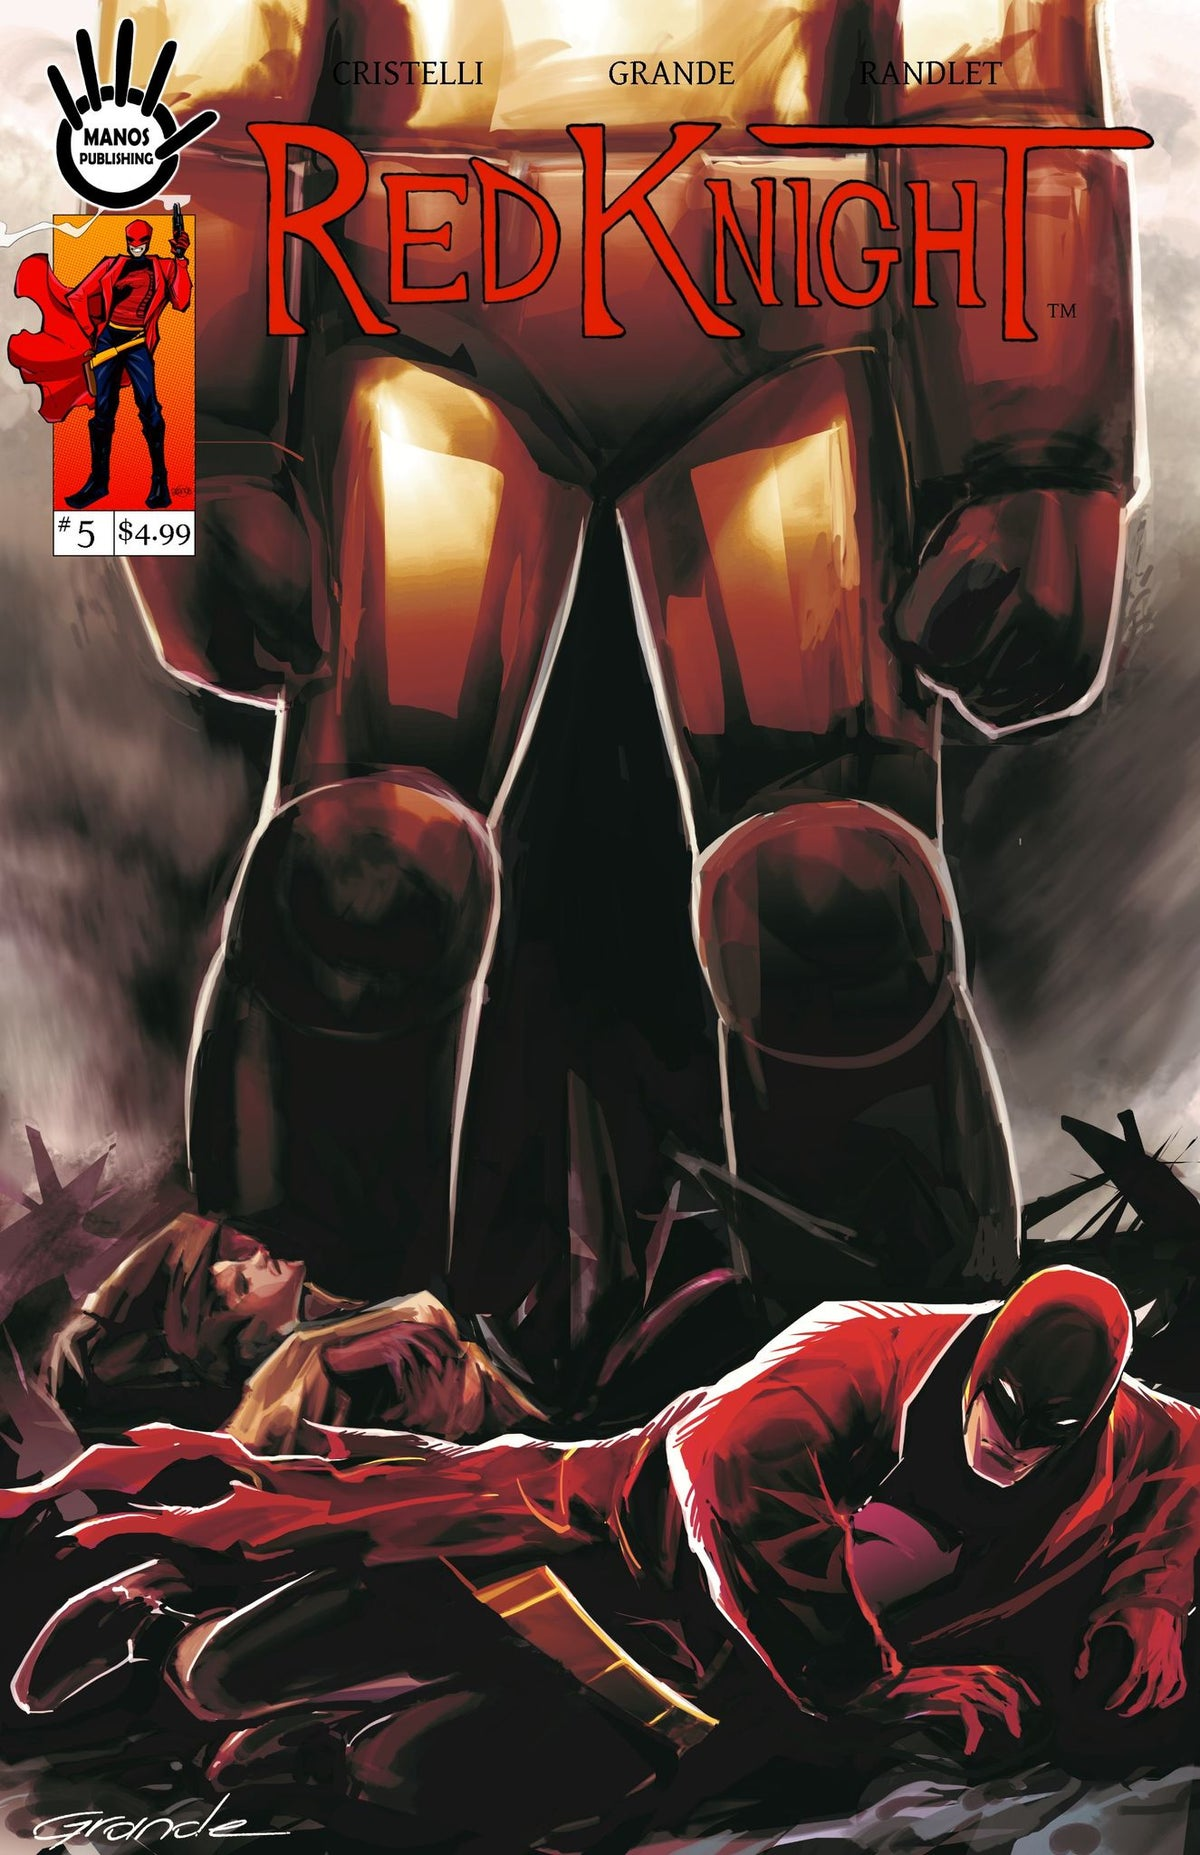 Image of Red Knight #5 Digital Version